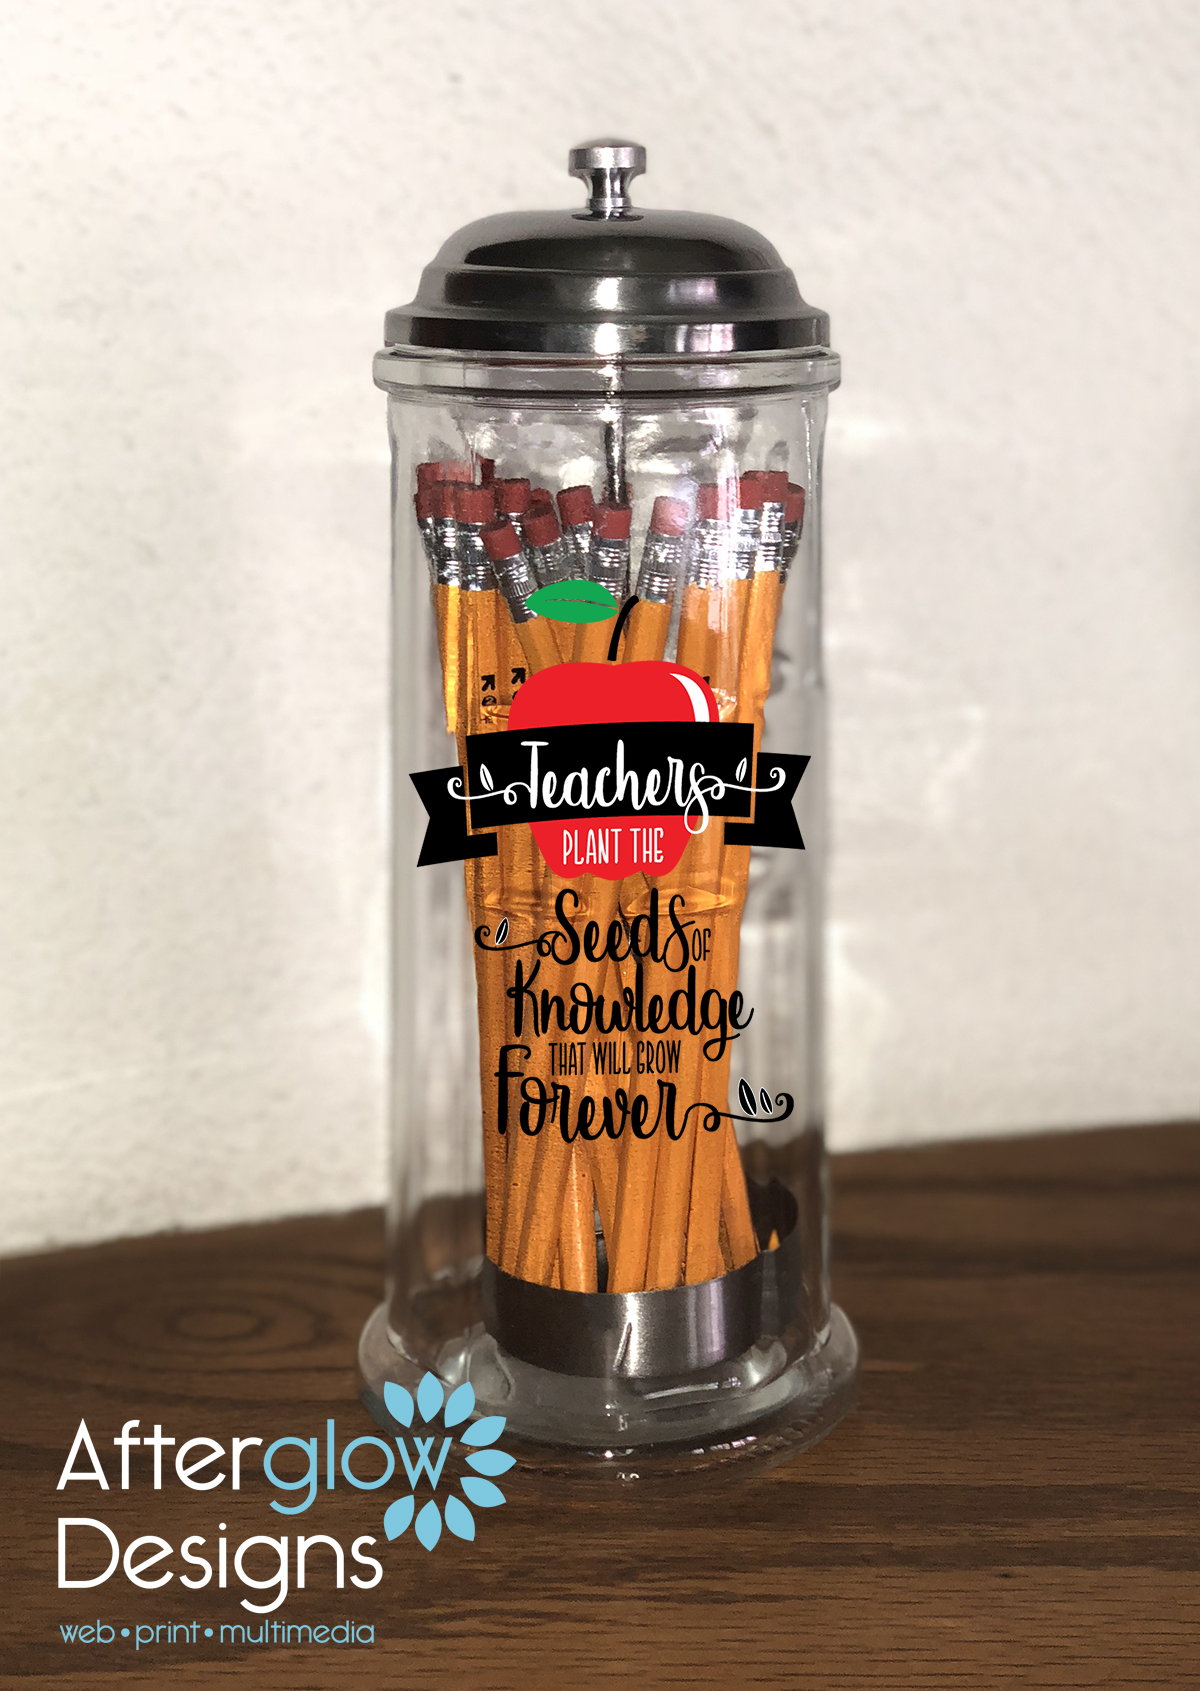 """Teachers Plan The Seeds of Knowledge That Will Grow Forever"" on Pencil Dispenser"